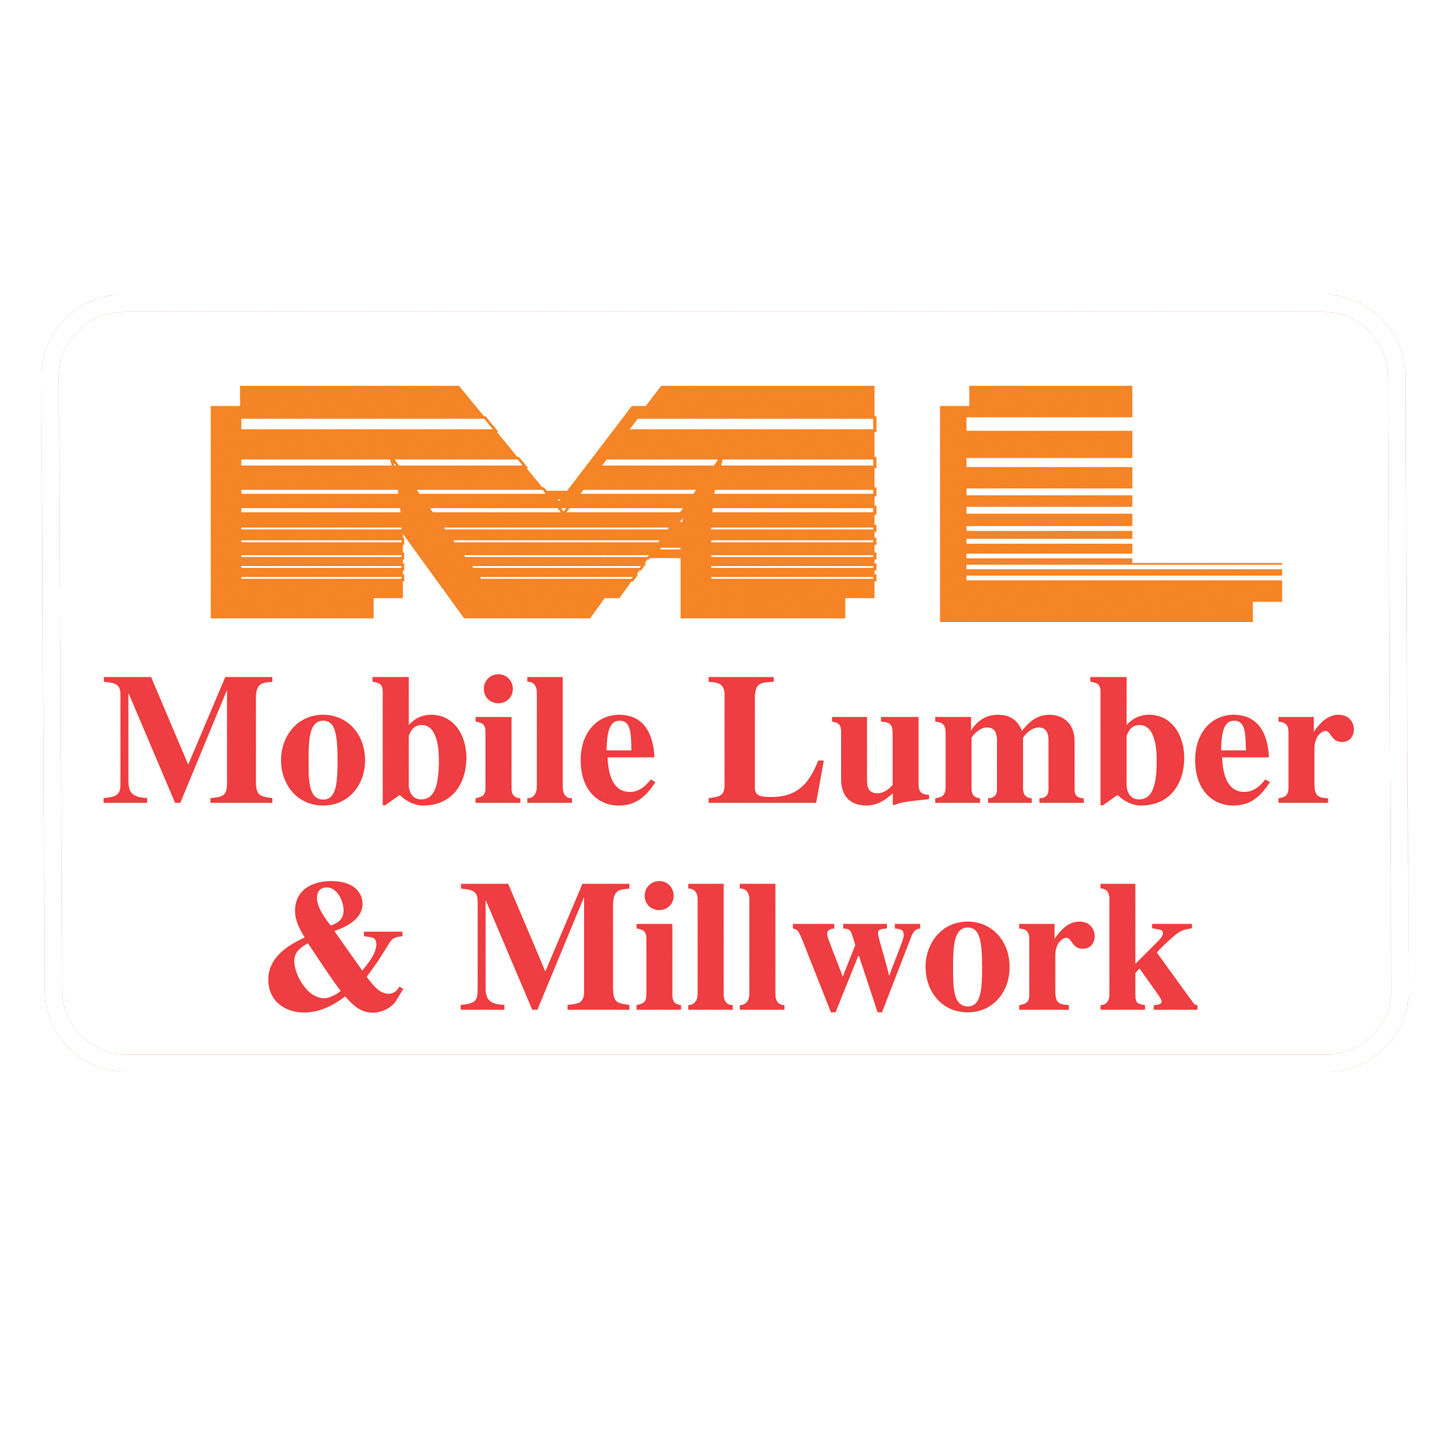 Mobile Lumber Millwork Coast Design Kitchen Bath Building Materials And Supplies Cabinet And Countertop Installation Windows And Doors In Mobile Al Townpros